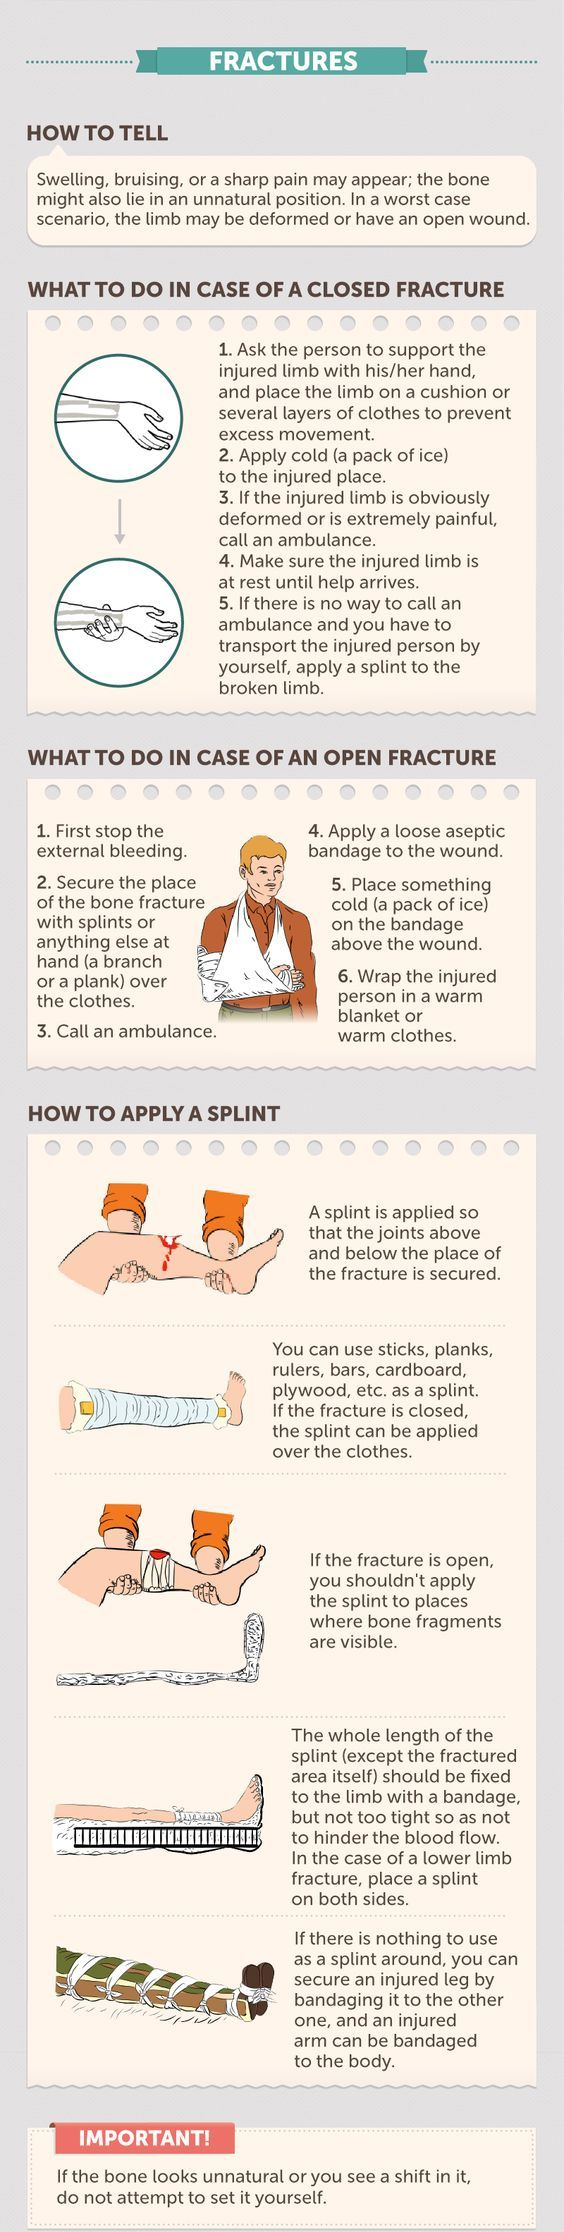 First aid for fractures